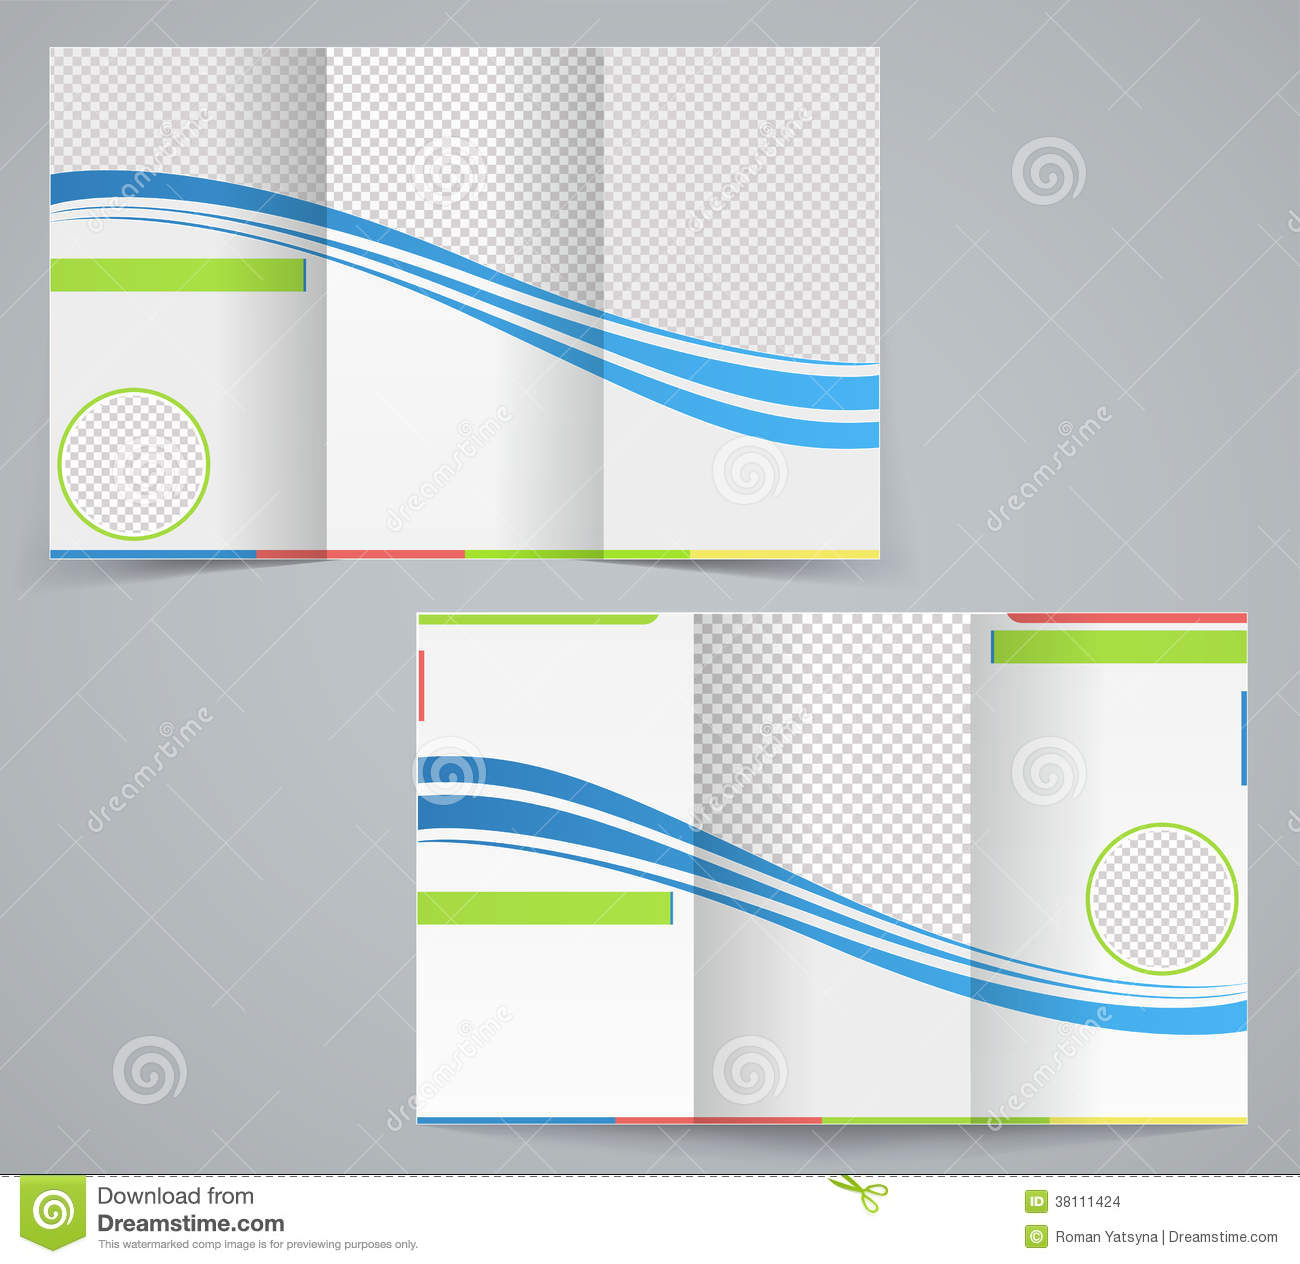 Tri fold business brochure template stock vector for Trifold brochure template